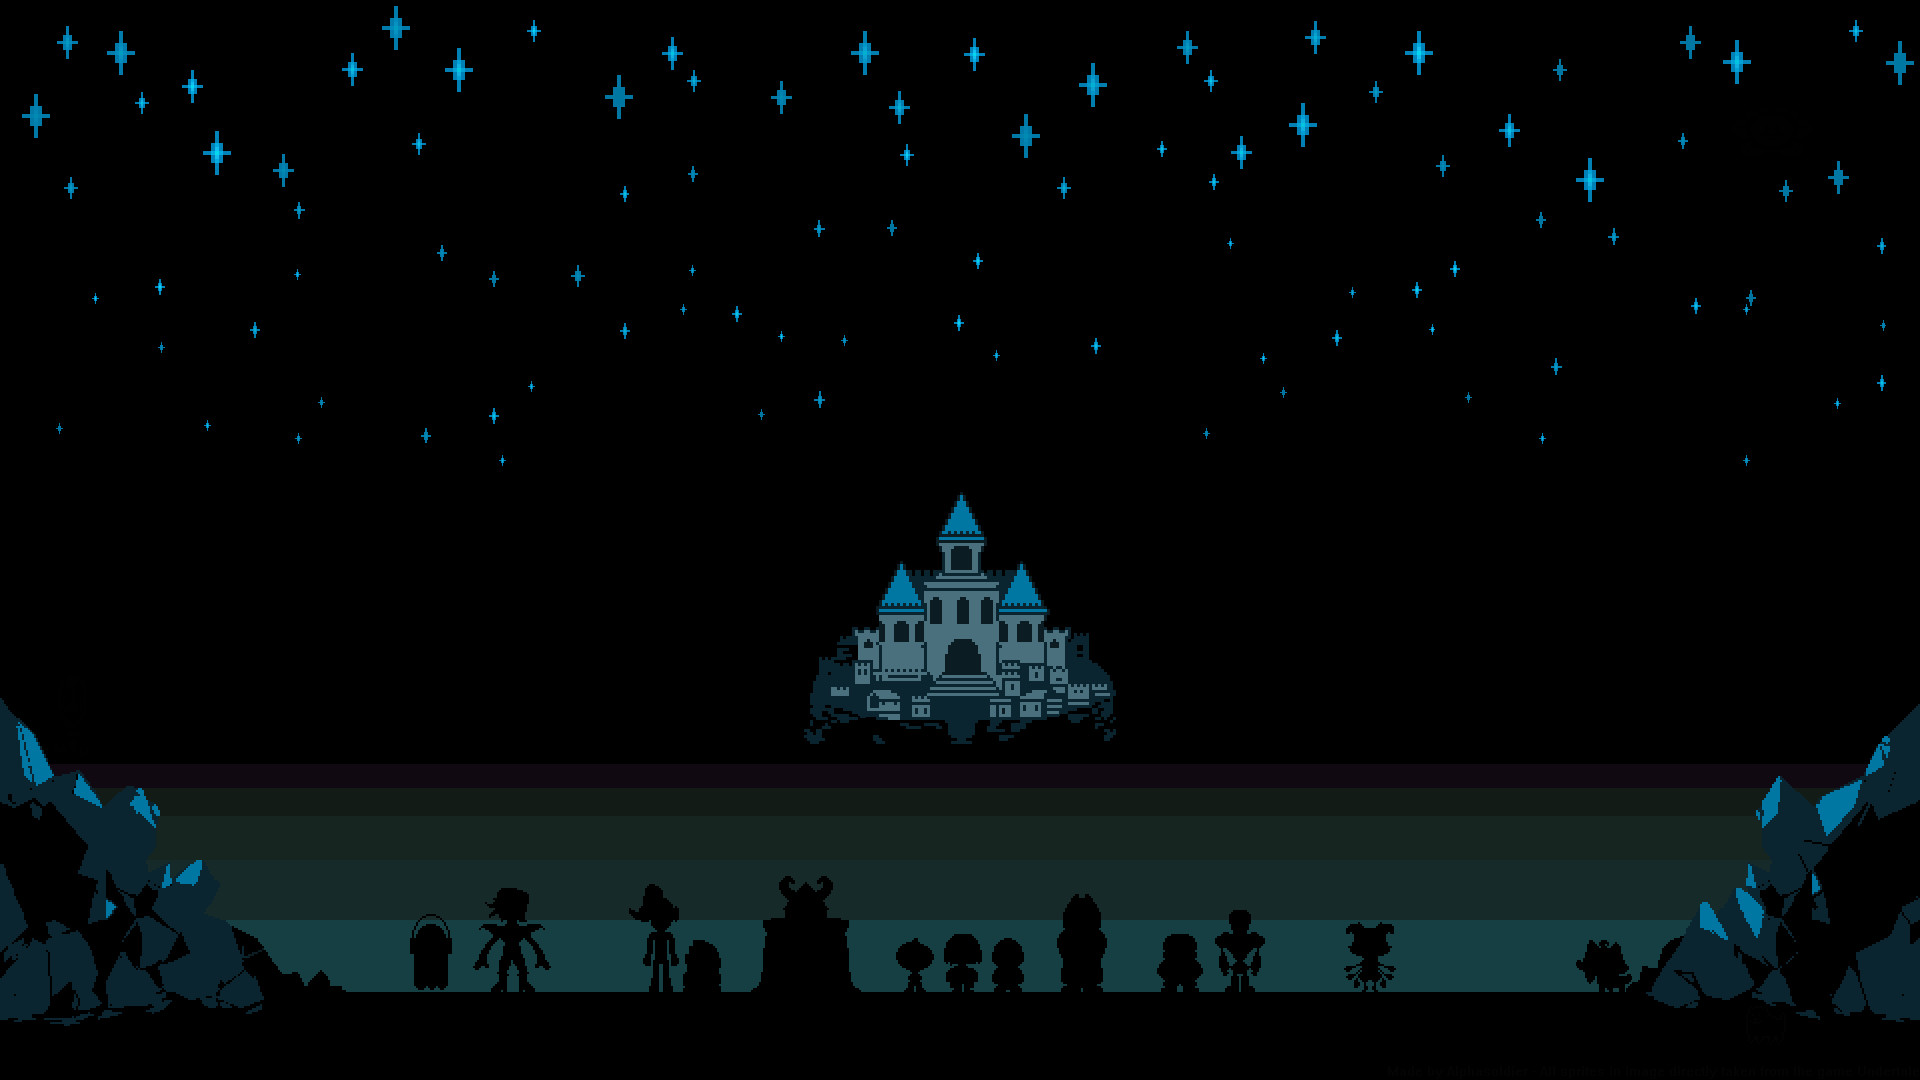 Recommended: Undertale Pics 05.11.14, Laurice Keegan